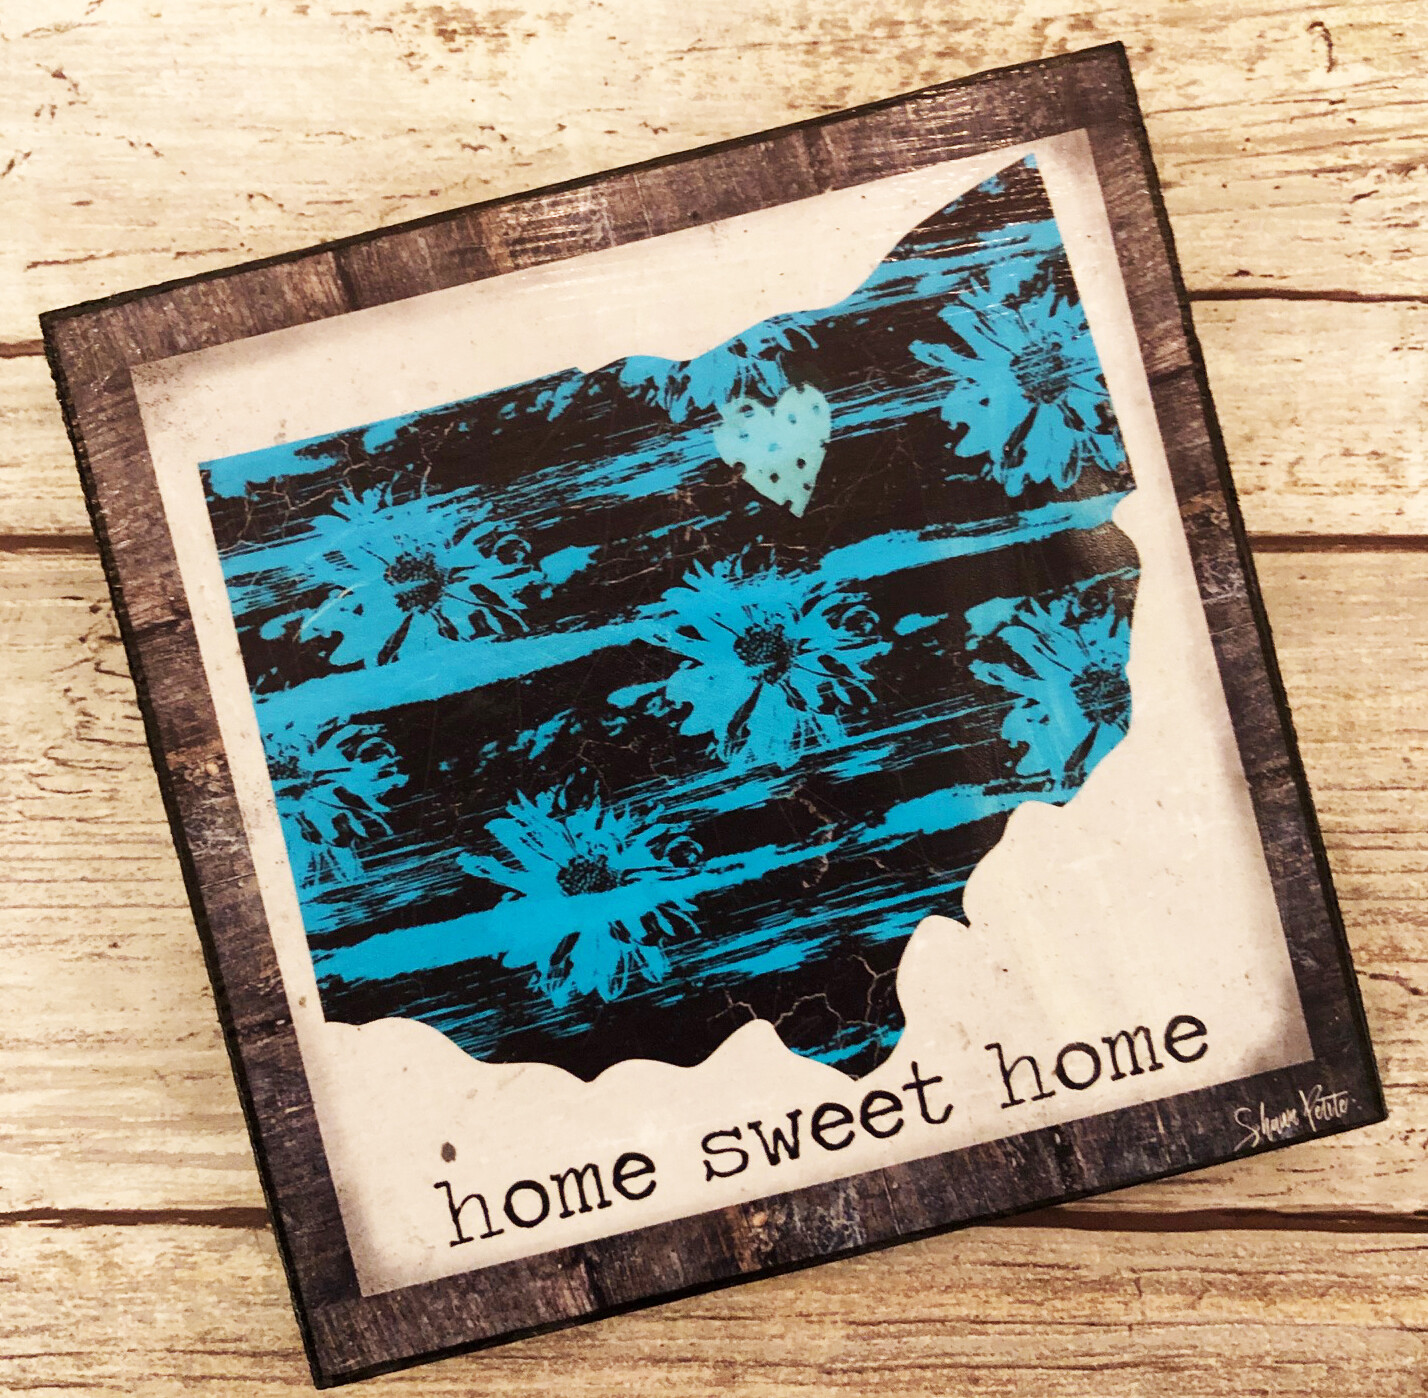 """Home Sweet Home"" 4x4 print on wood clearance"